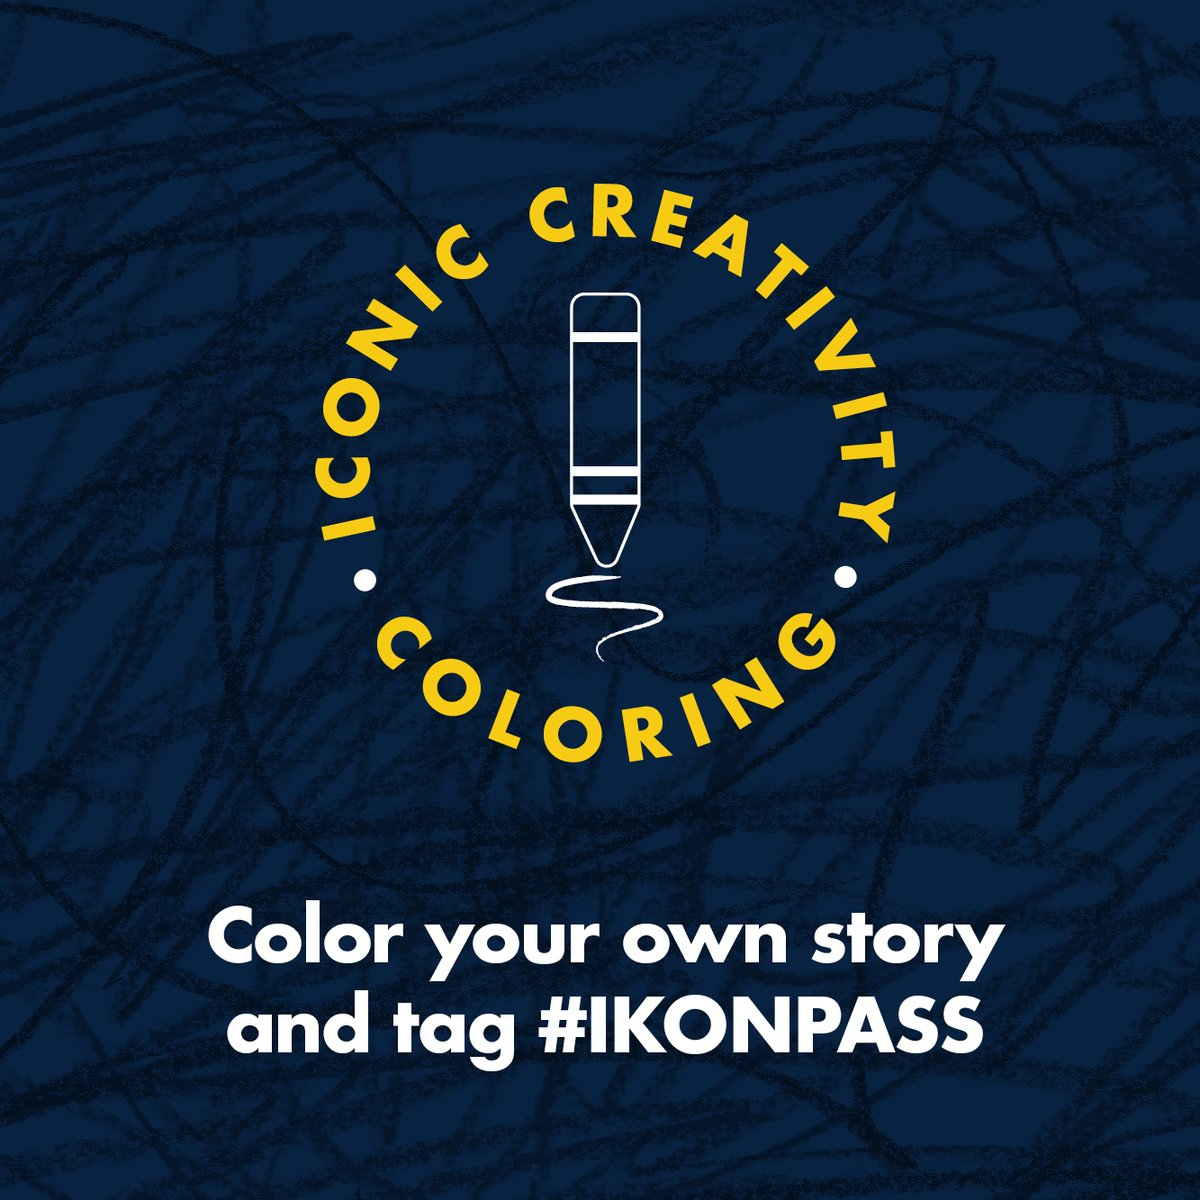 Adventure is anything but black & white. Color your own story by downloading exclusive @IkonPass artwork, designed by Adam Haynes & Dylan Fant: https://t.co/AGs0tMLNfS  Share how you see the mountains by tagging #ikonpass or submitting it on our blog. https://t.co/O1MwnHT83O